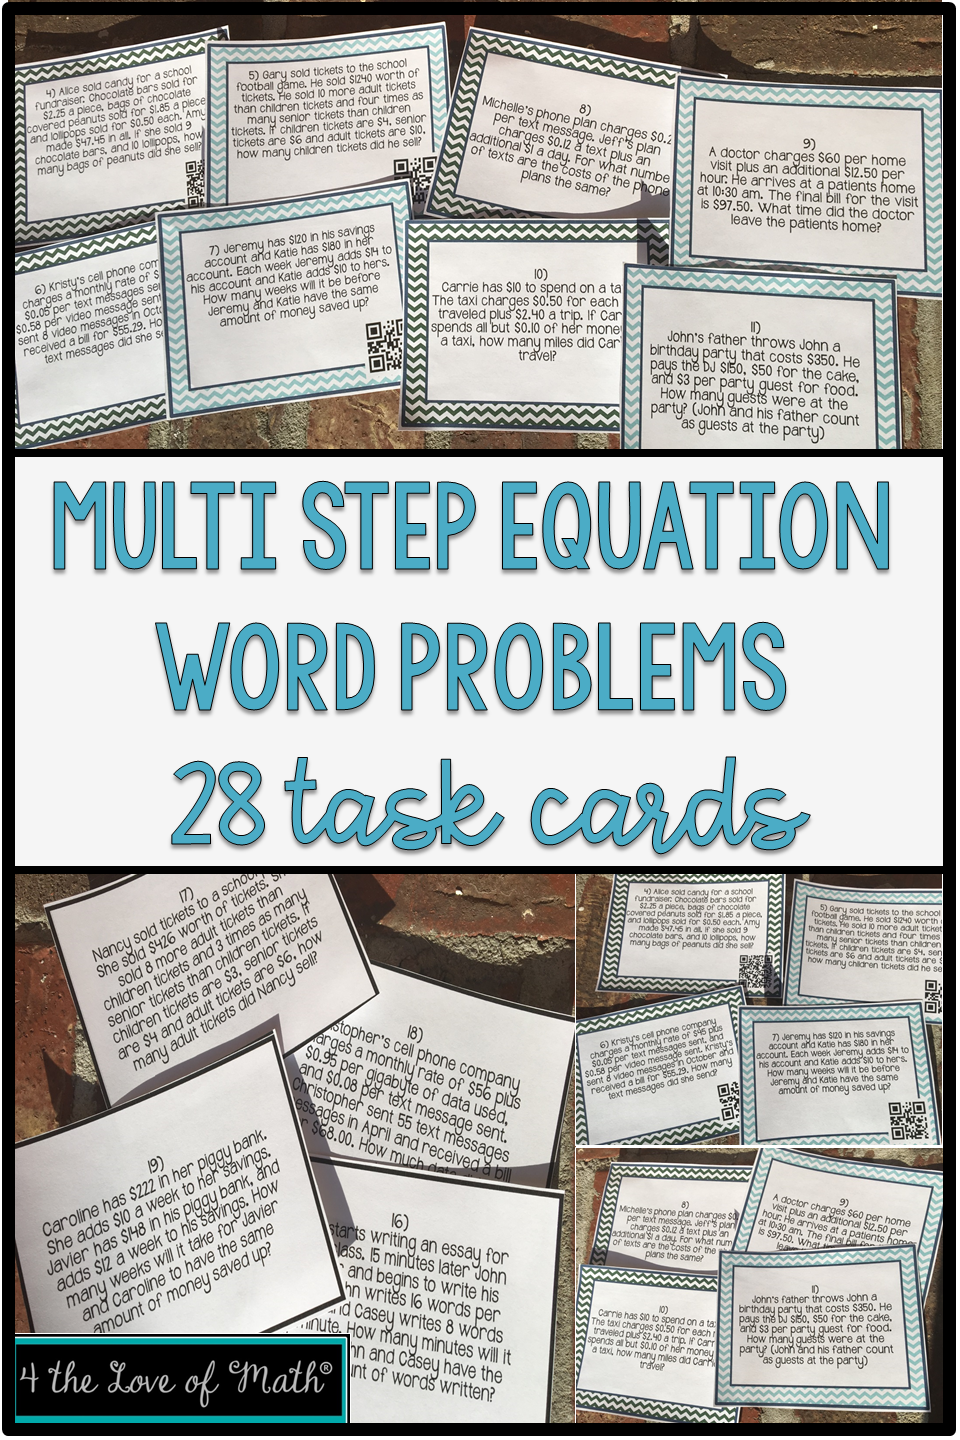 Multi Step Equation Word Problems: 28 Task Cards | Word problems ...